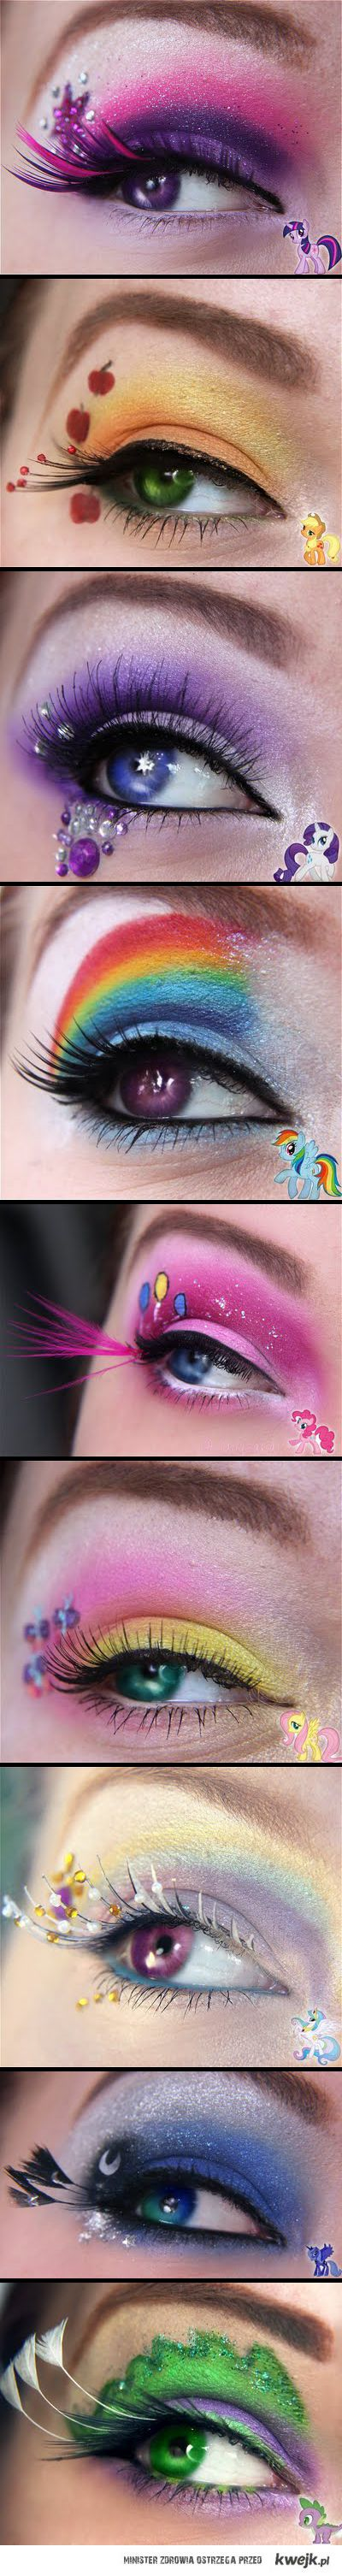 These are so flipping cute!: Pony Eye, Eye Makeup, Mylittlepony, Eyeshadow, Ponies, My Little Pony, Eyemakeup, Pony Makeup